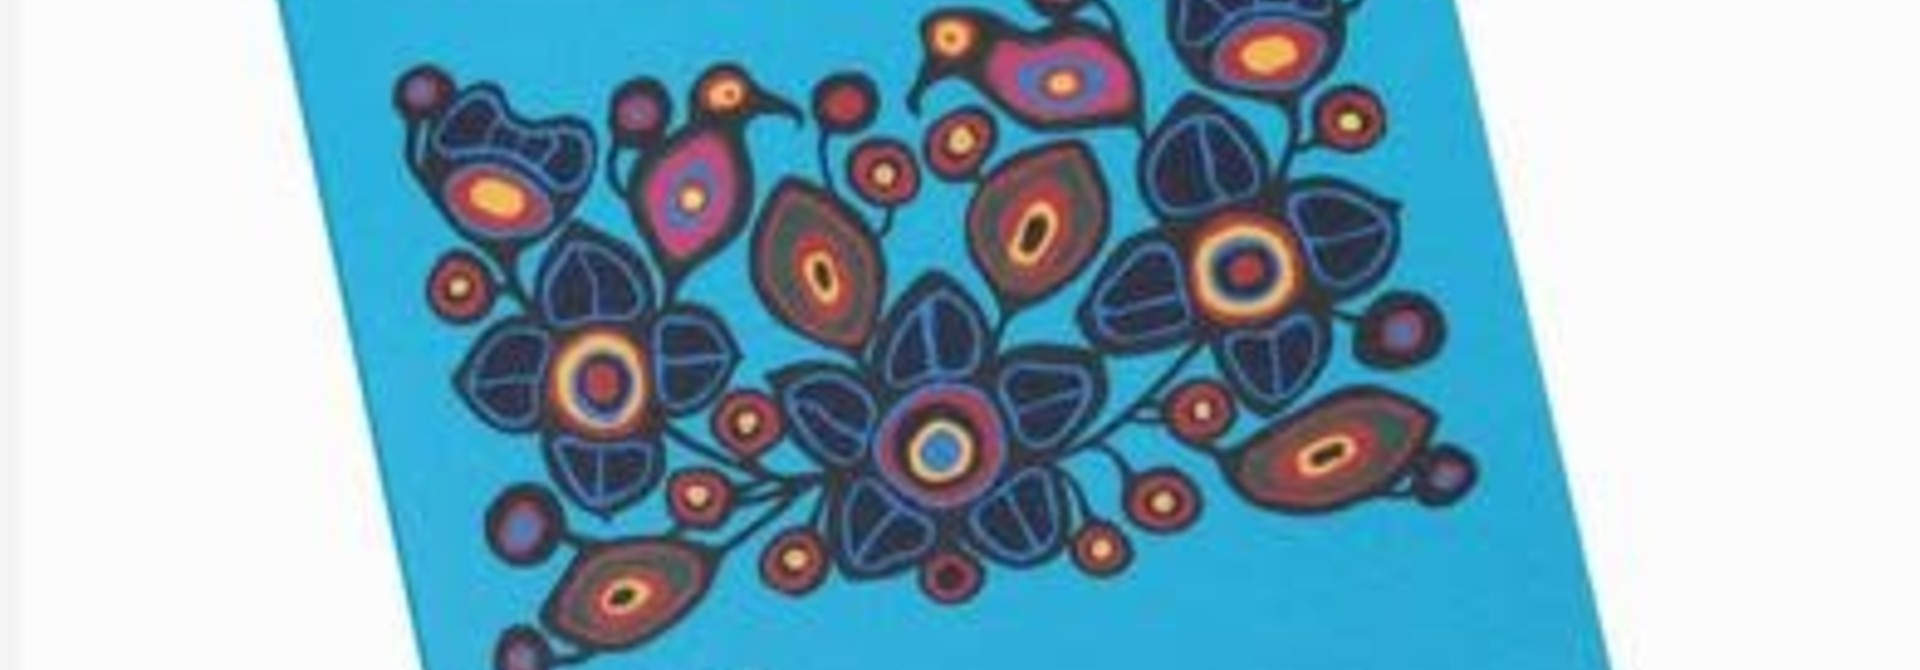 Flowers and Birds Sticky Notes Set-Norval Morrisseau